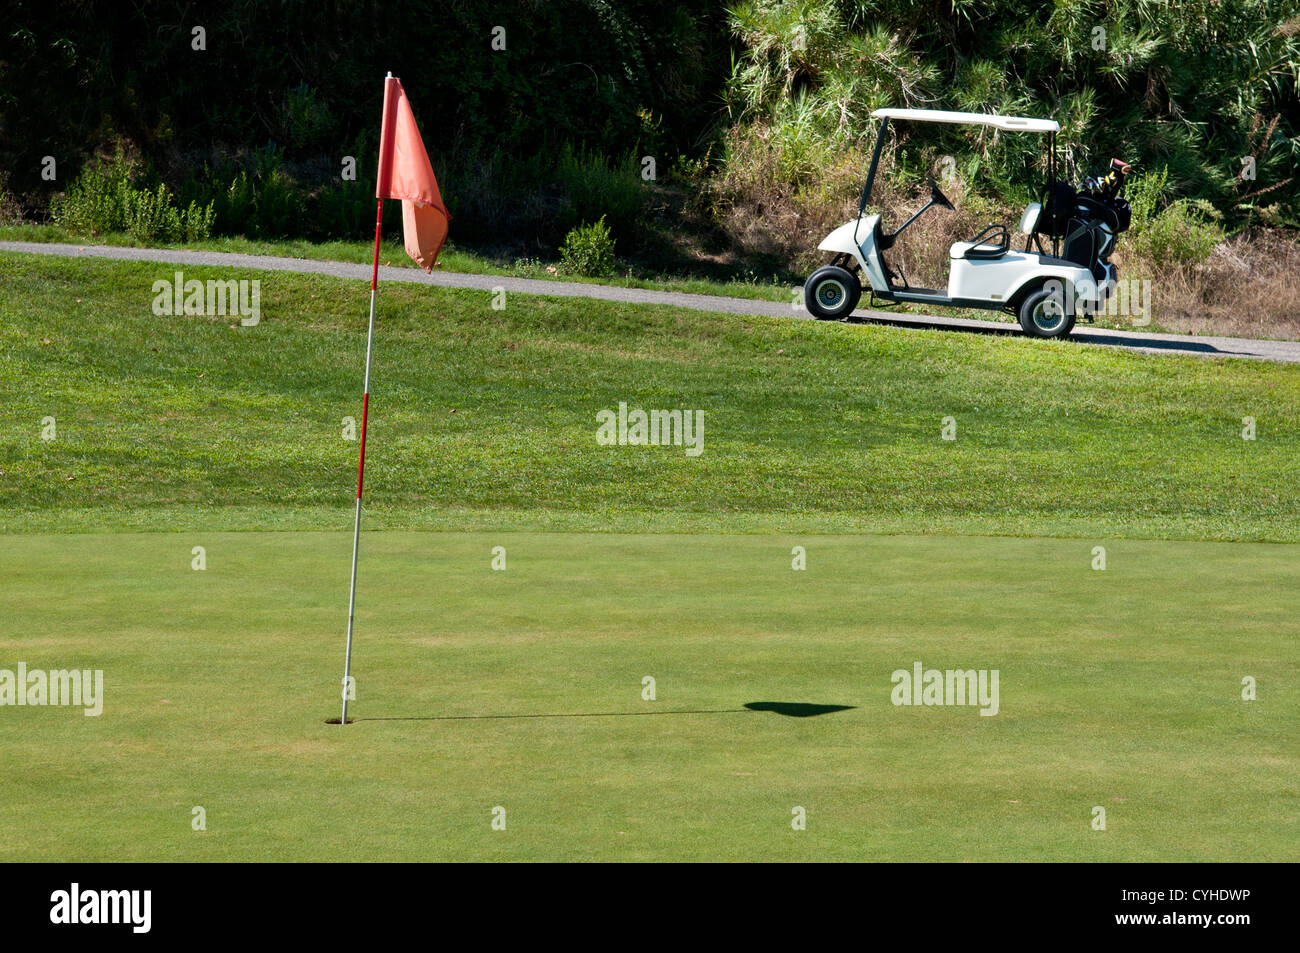 Golf cart next to a hole on a golf course - Stock Image